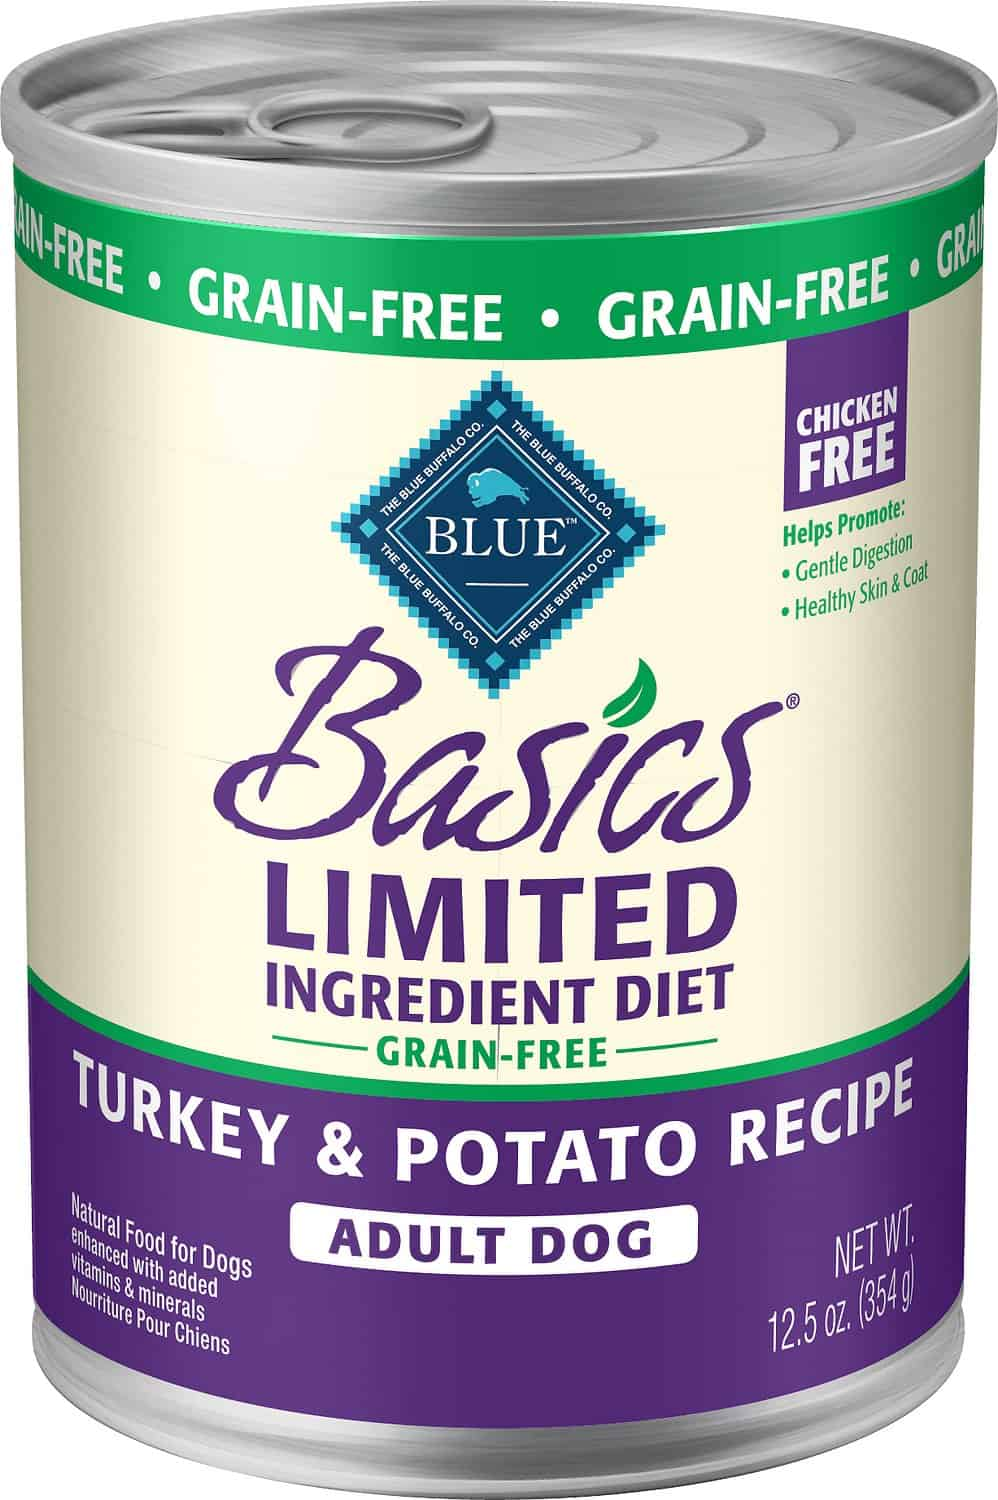 Best Dog Food for Allergies: A Comprehensive Buyer's Guide and Review 28